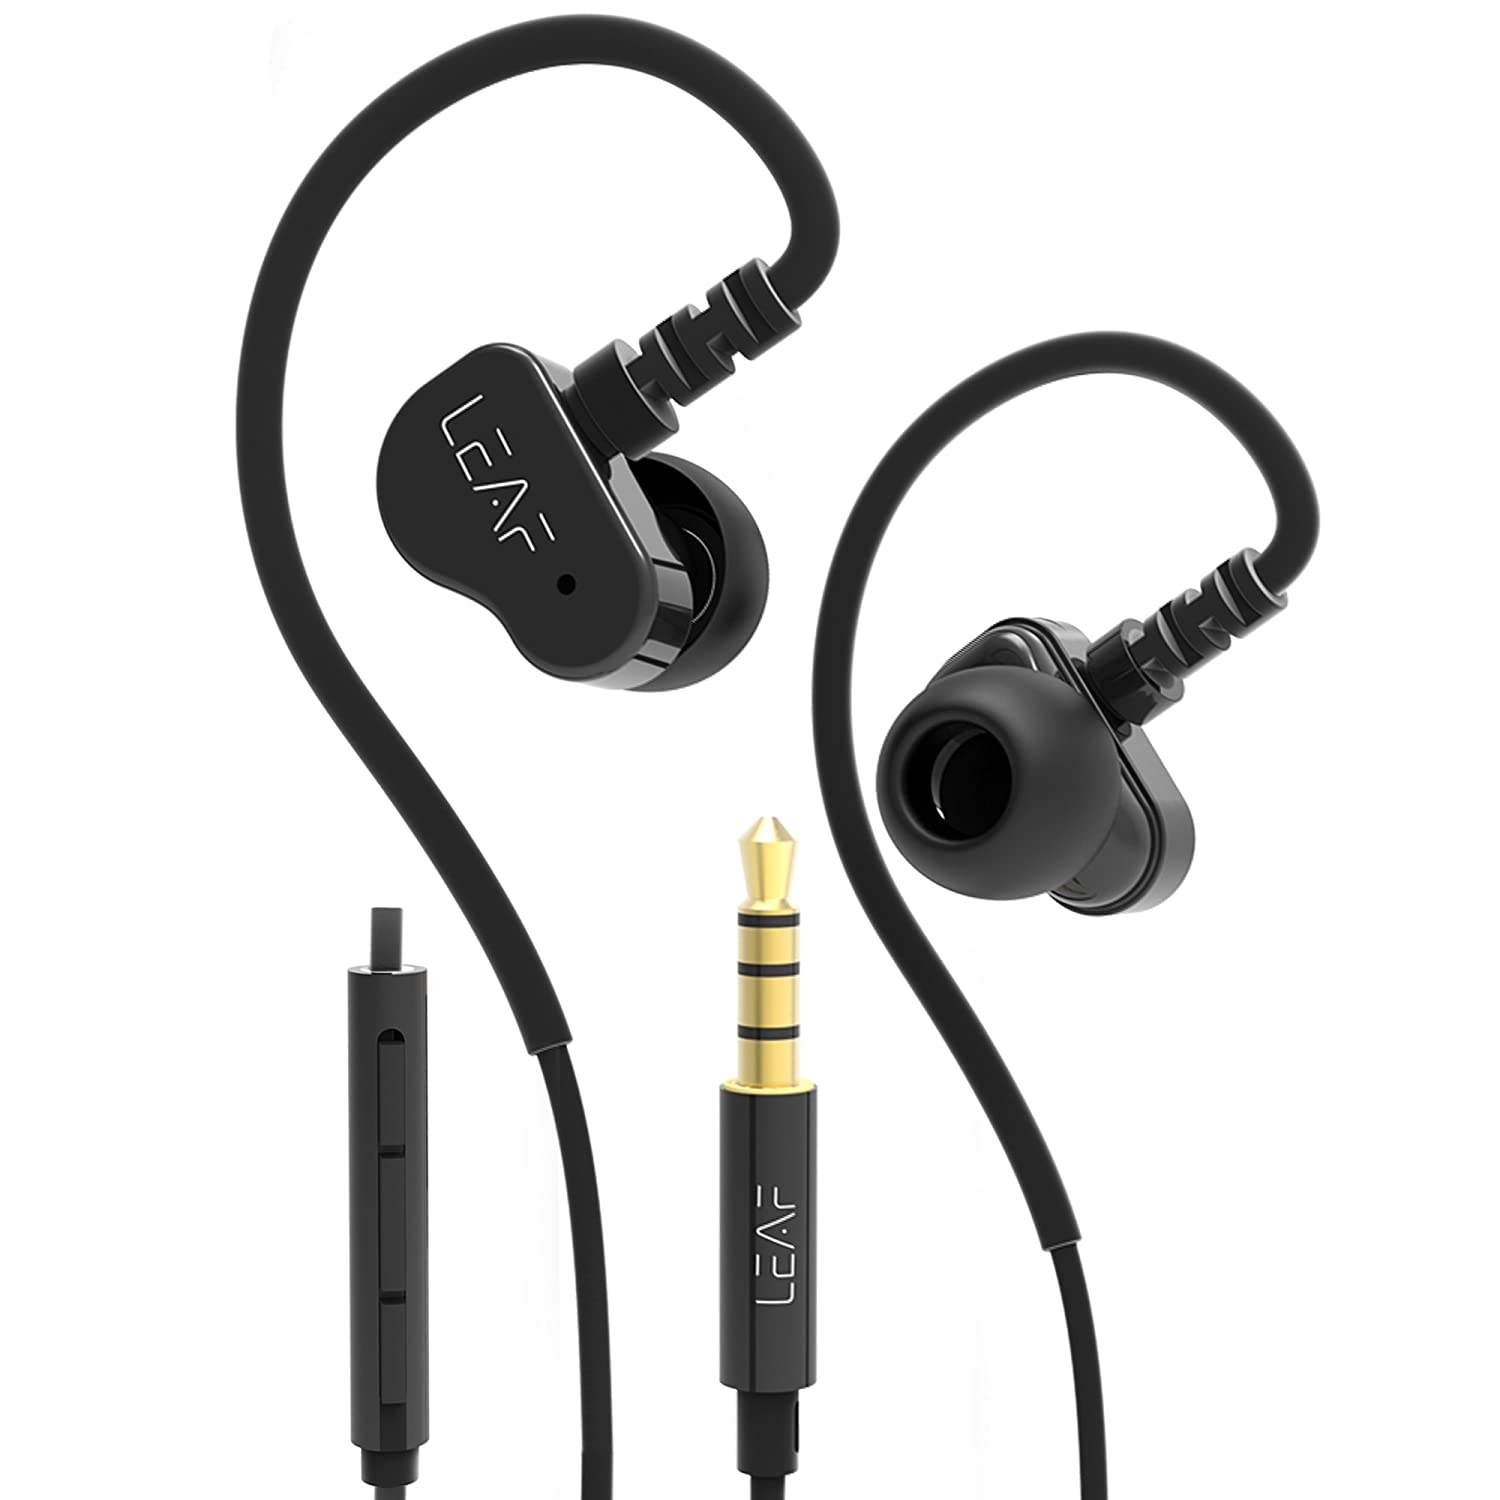 Leaf Bolt Dual Driver Wired Earphones for Android, iOS and